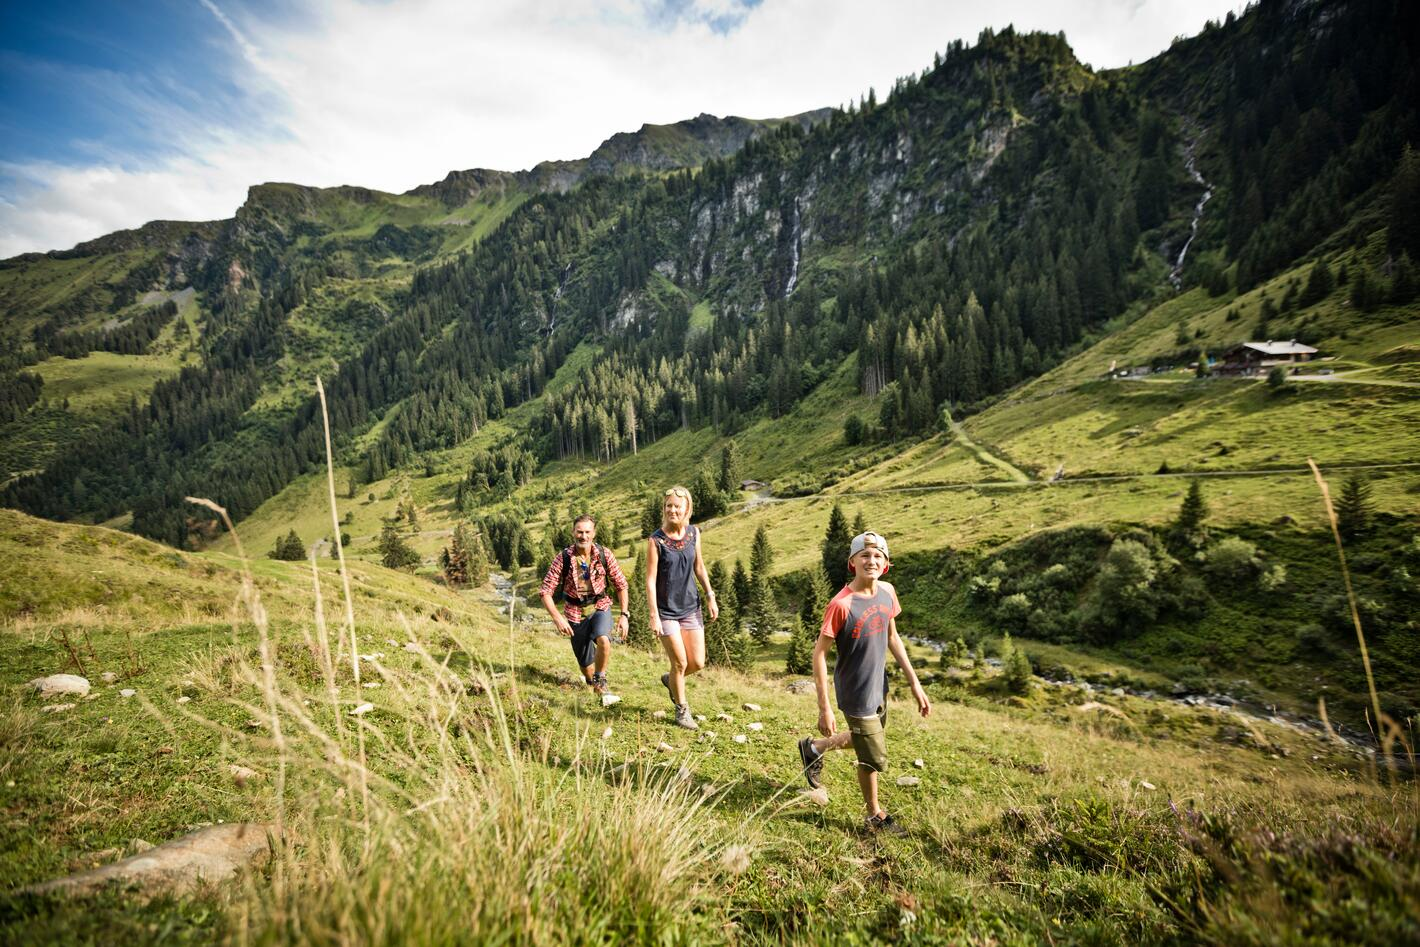 hiking holiday family Salzburger Land | © saalbach.com, Mirja Geh